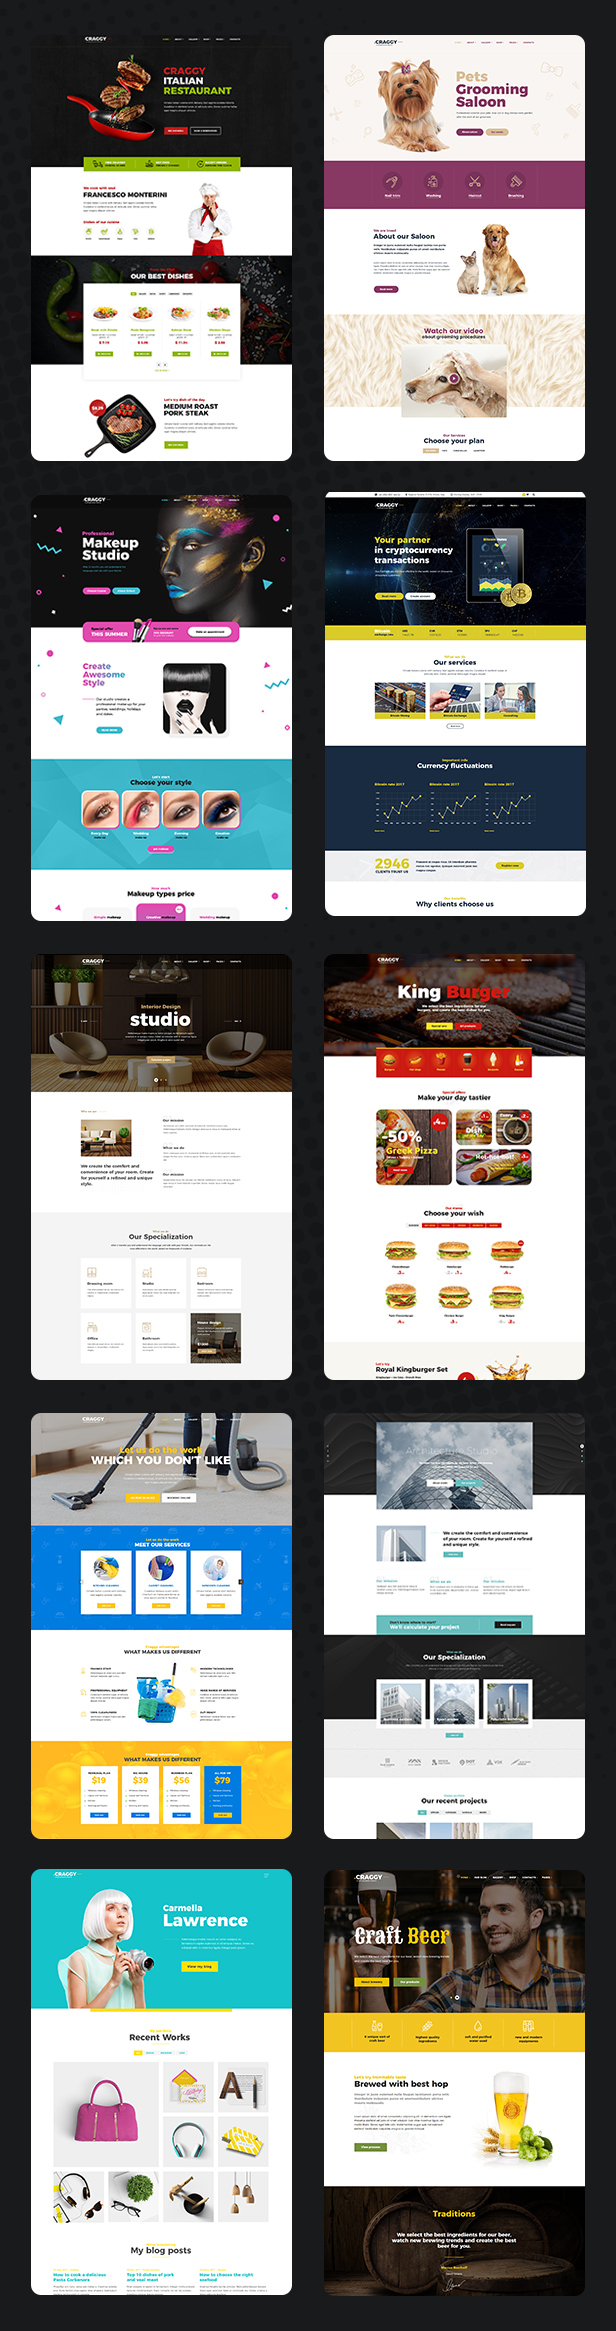 Craggy - Food Delivery, Services & Bitcoin Crypto Currency Multi-purpose WordPress Theme - 6